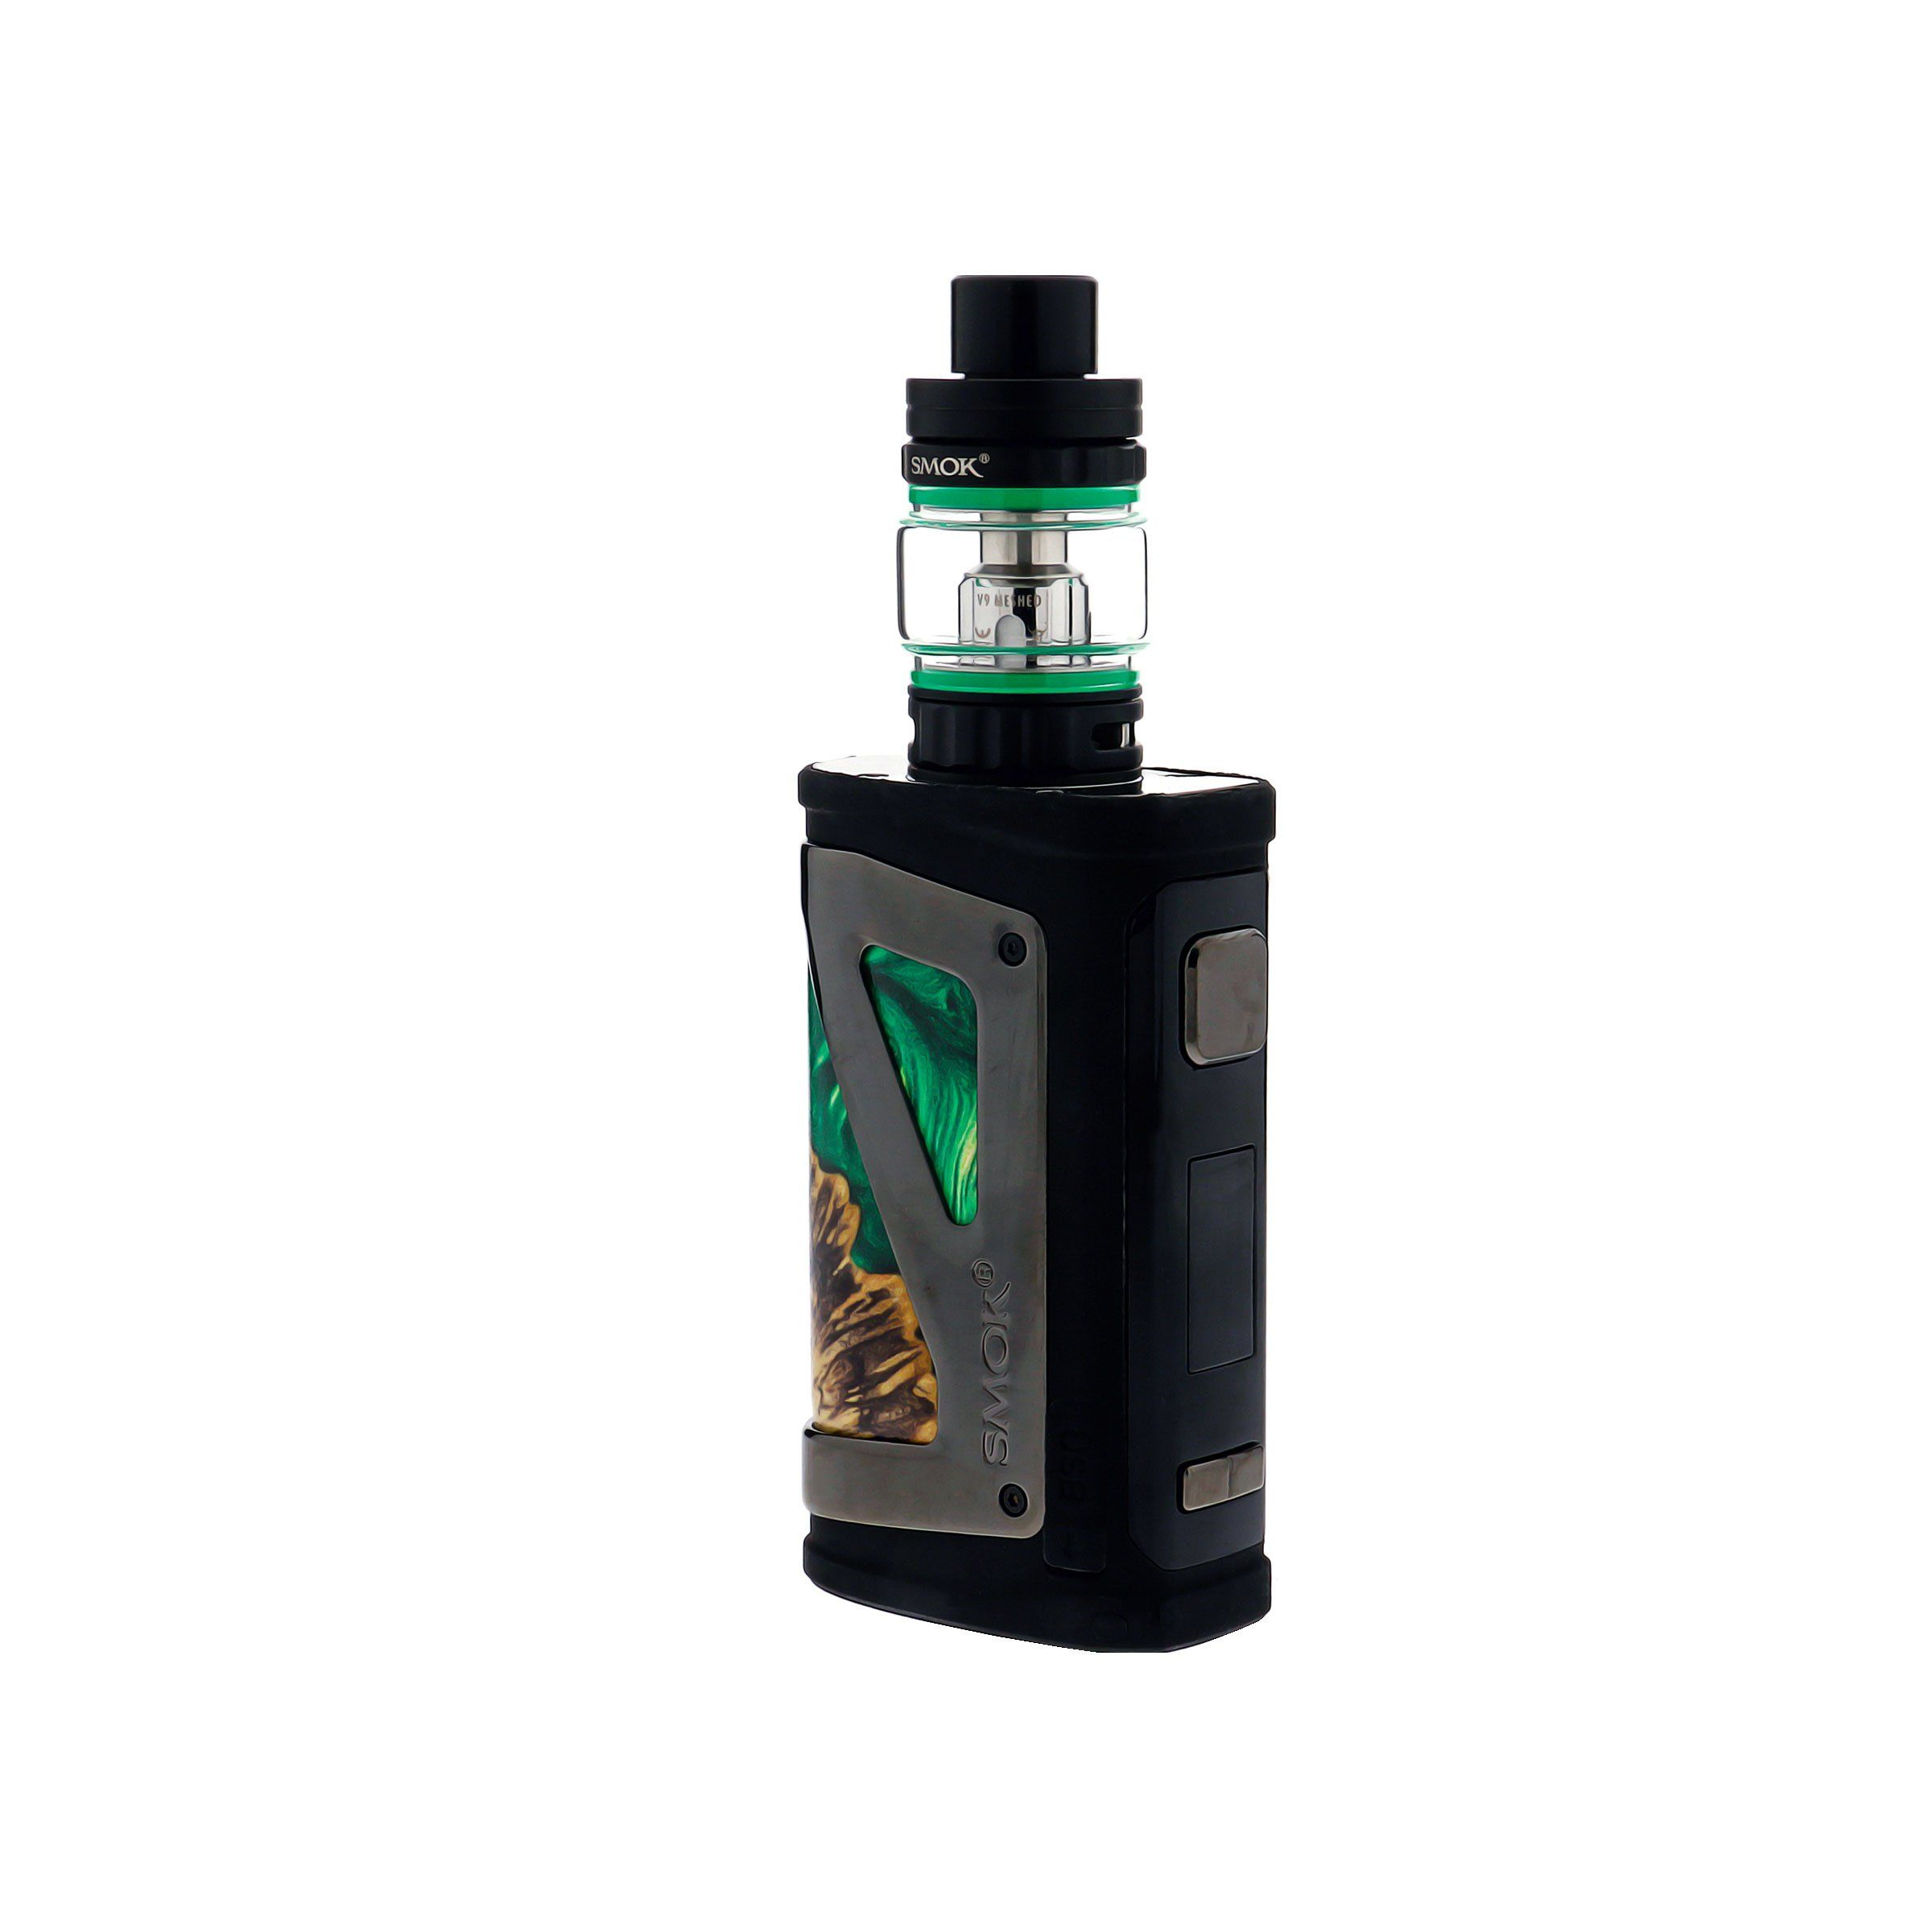 SMOK Scar 18 230W Starter Kit with TFV9